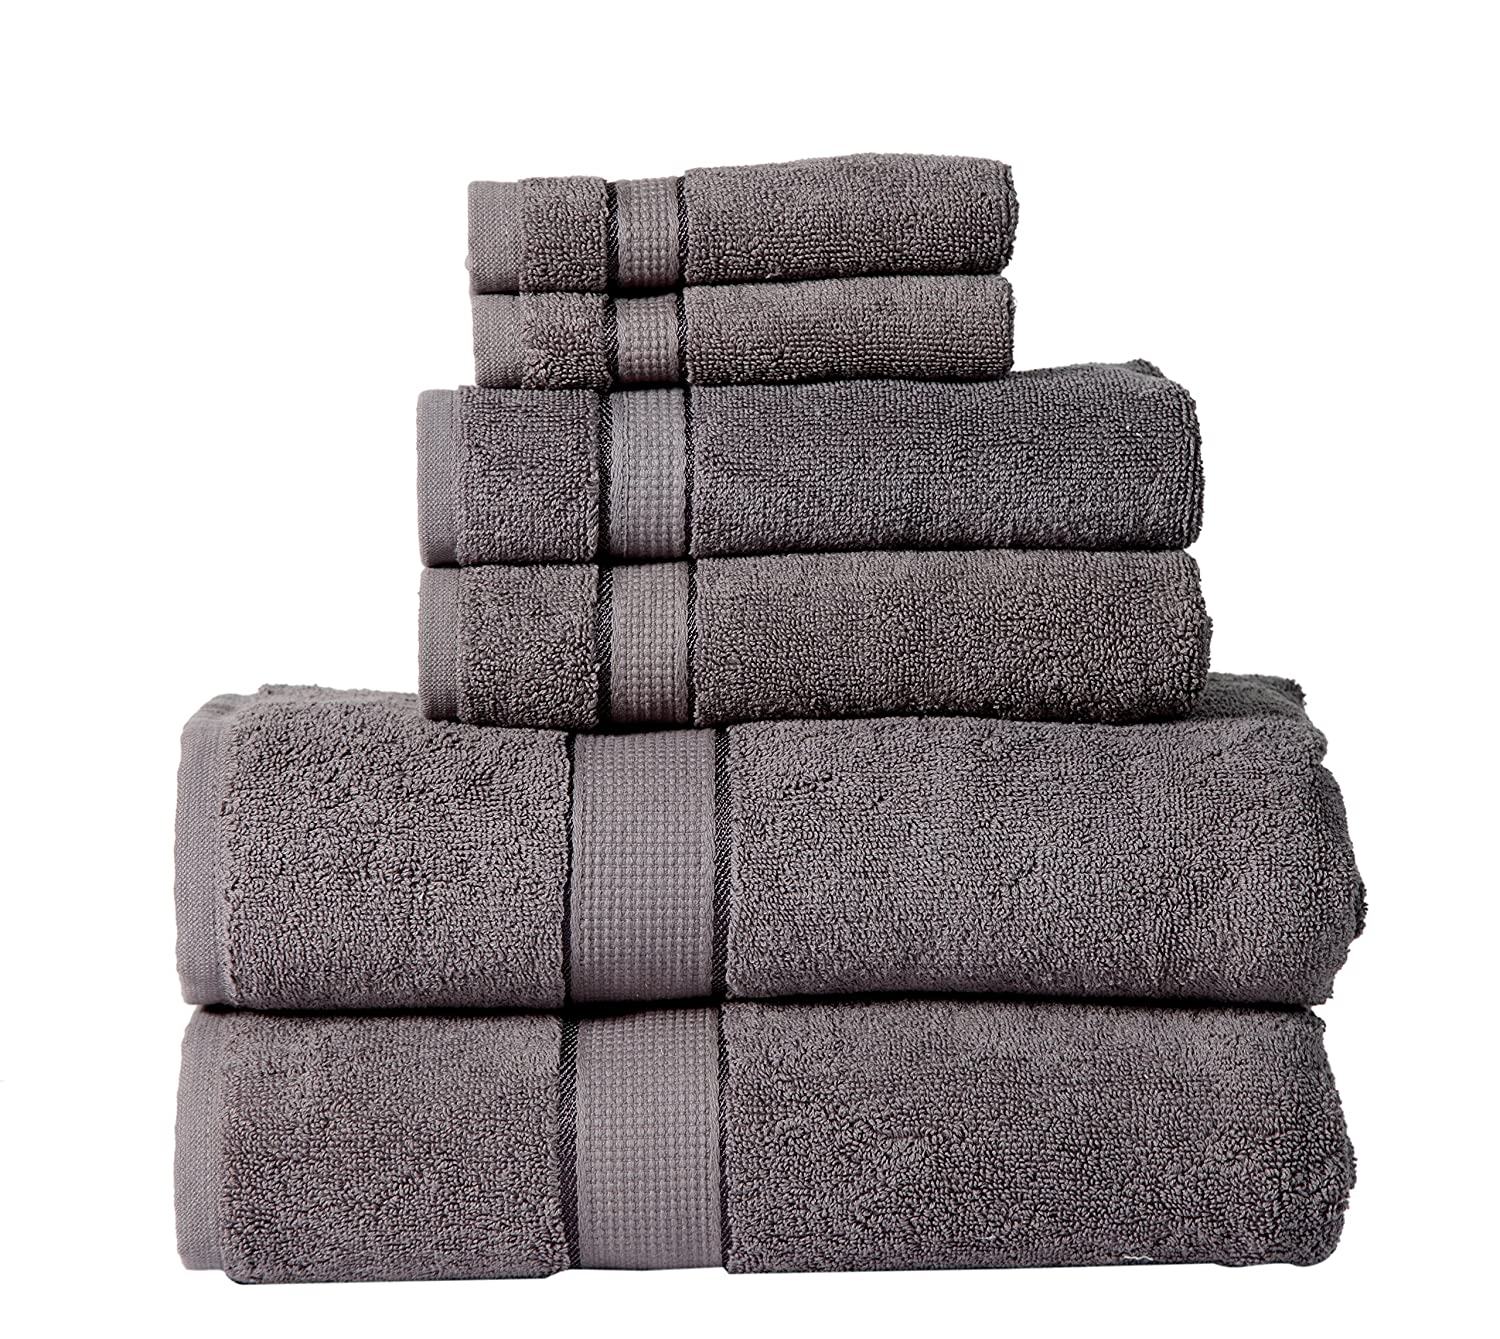 600 GSM Ultra Soft 100% Cotton 6 Piece Towel Set (Platinum Grey): 2 Bath Towels, 2 Hand Towels, 2 Washcloths, Long-staple Cotton, Spa Hotel Quality, Super Absorbent, Machine Washable Panache Collection